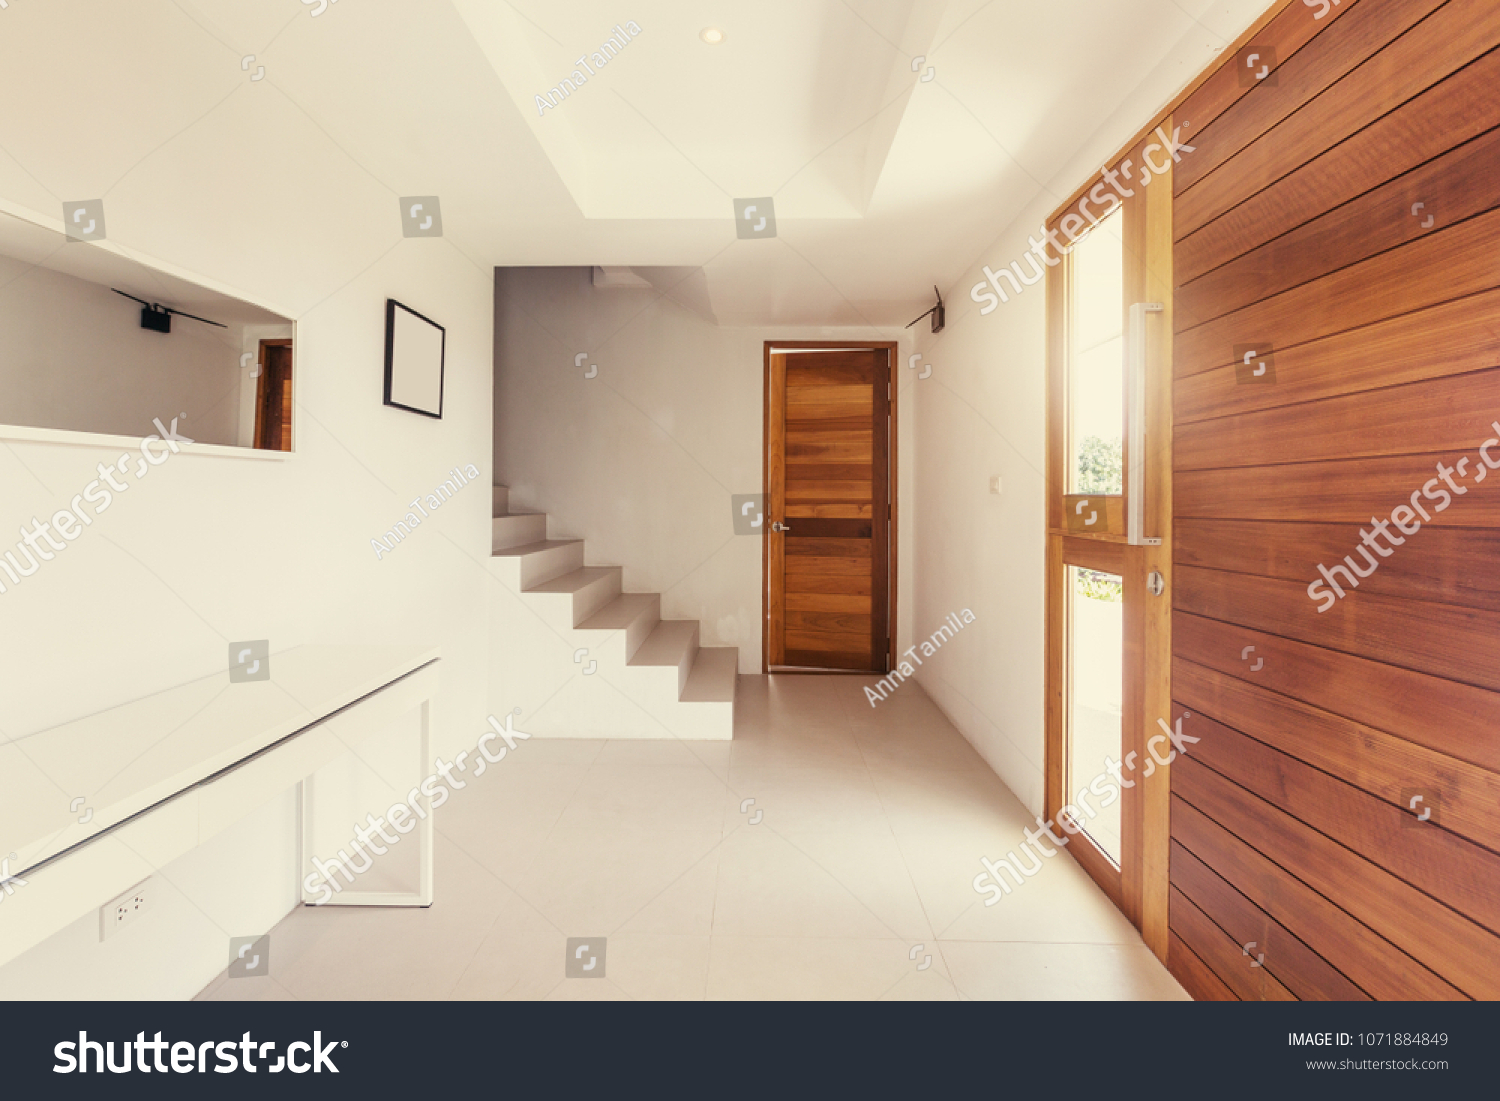 Hallway modern interior wood white color stock photo edit now